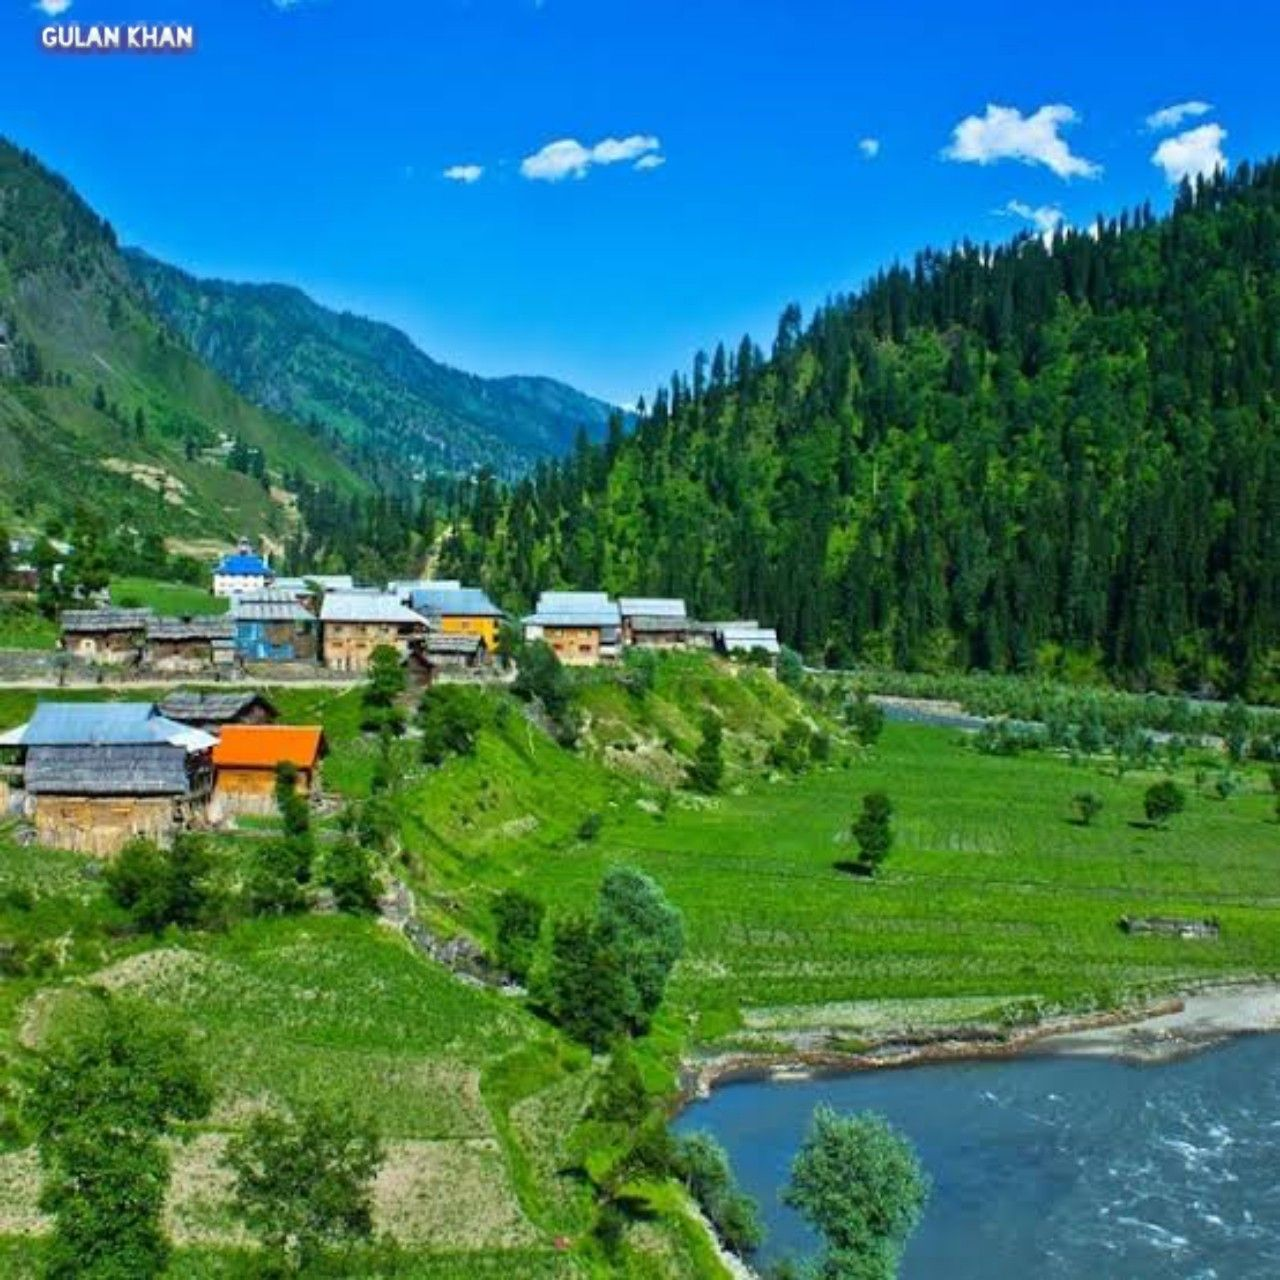 Taobat Neelam valley Azad Kashmir Pakistan (With images